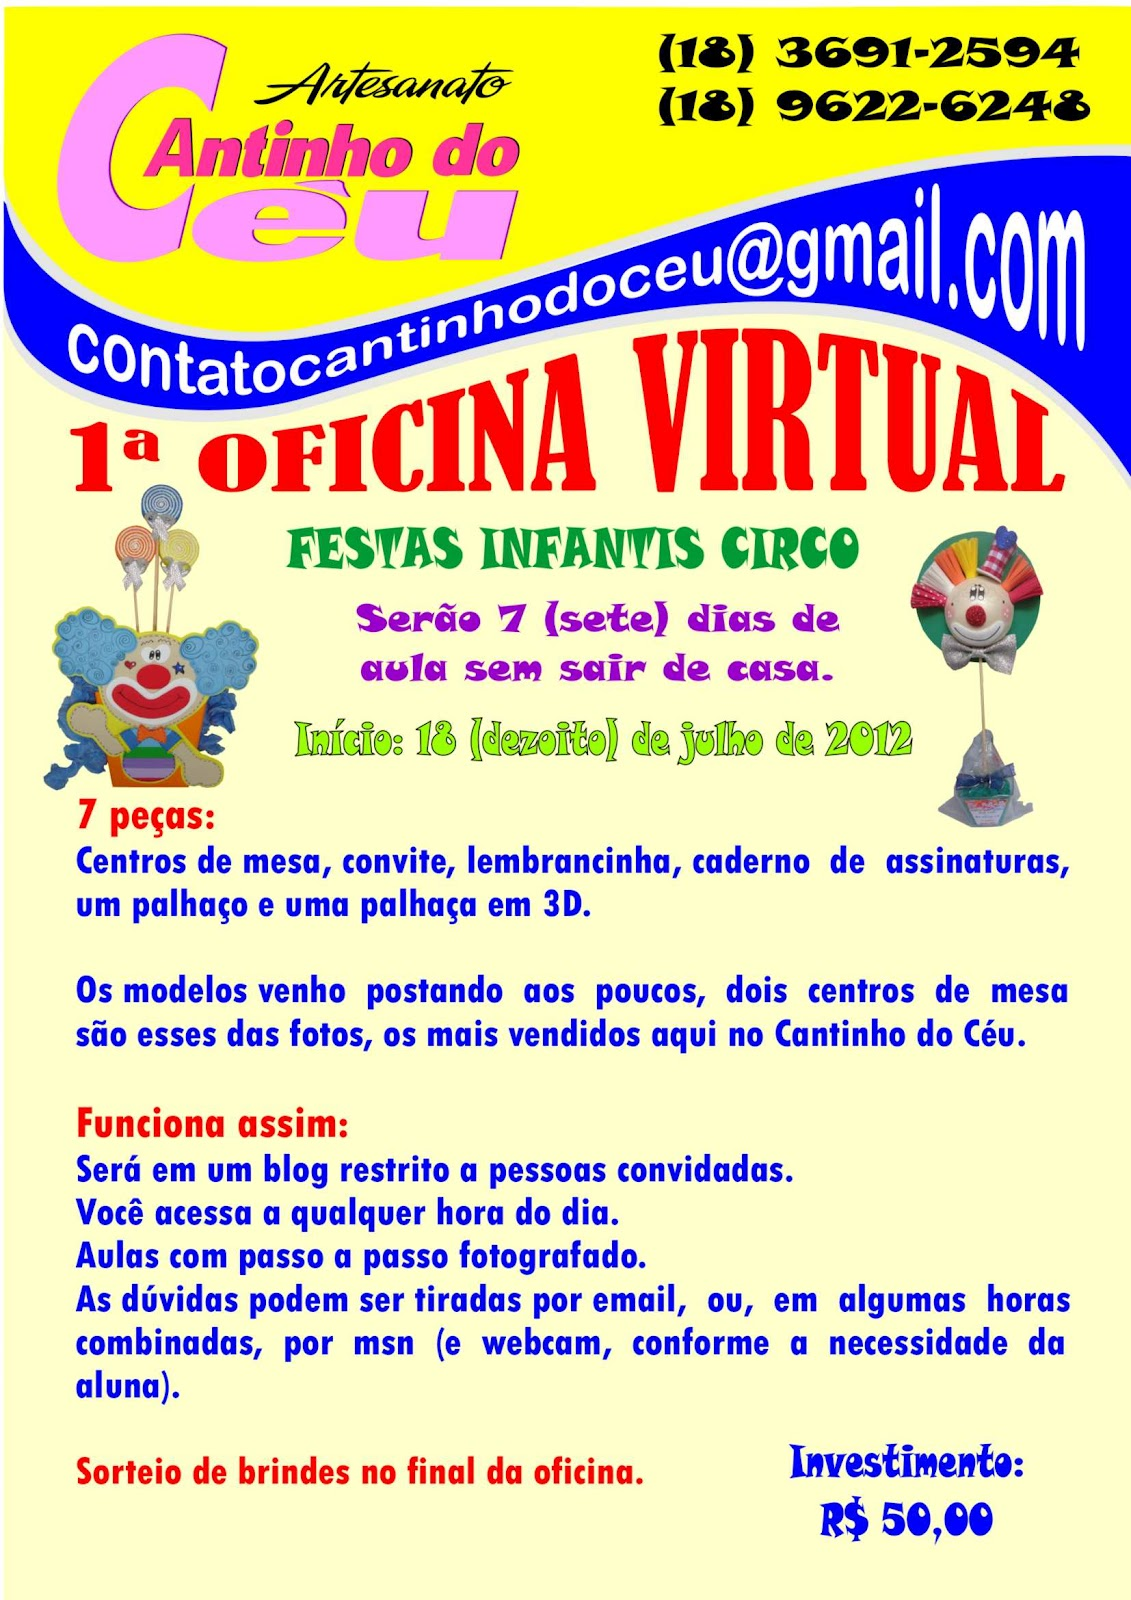 Angel artes em e v a for Oficina virtual de sepe